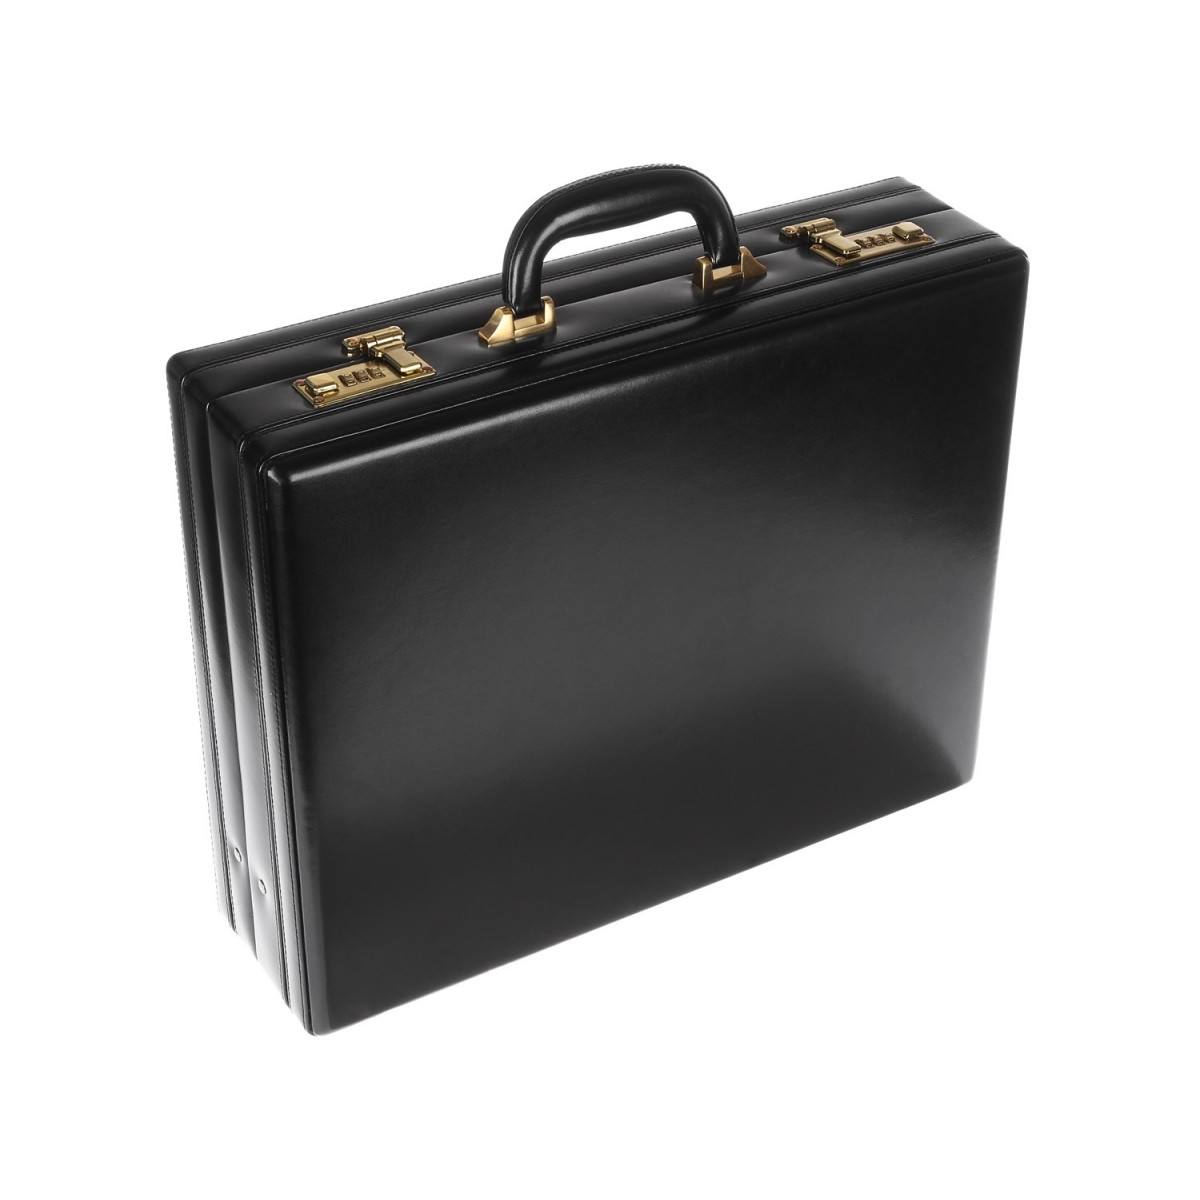 Briefe Case : Backpack to briefcase transitioning from a student